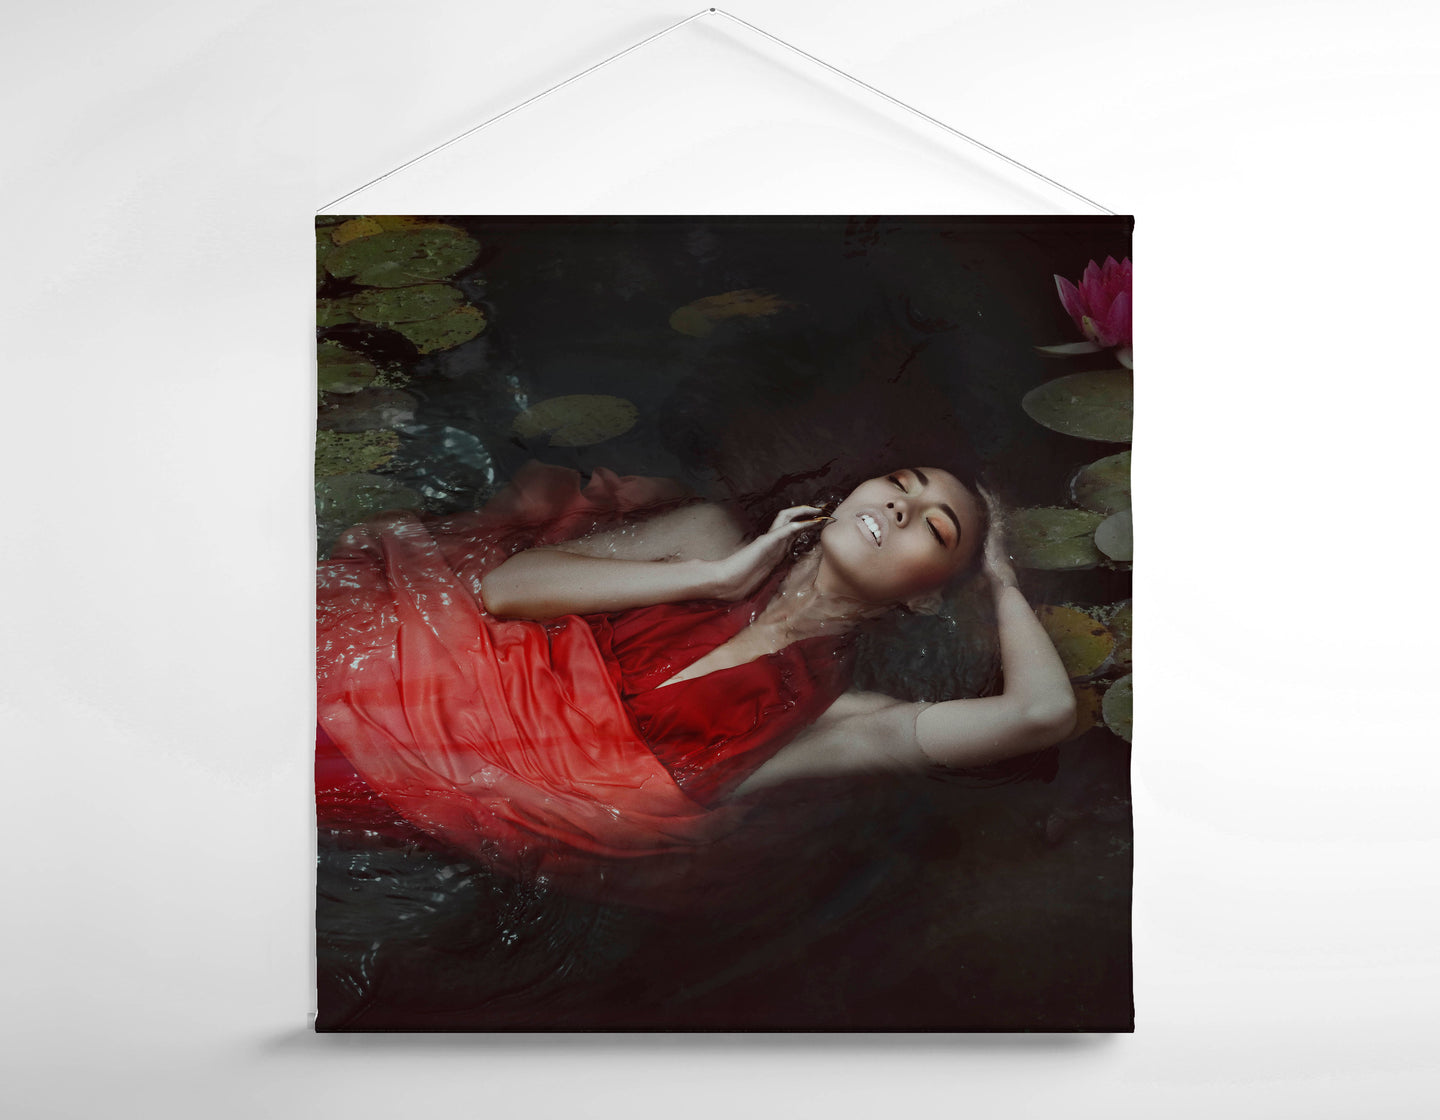 Salon Banner - Woman Laying on Her Back in Water